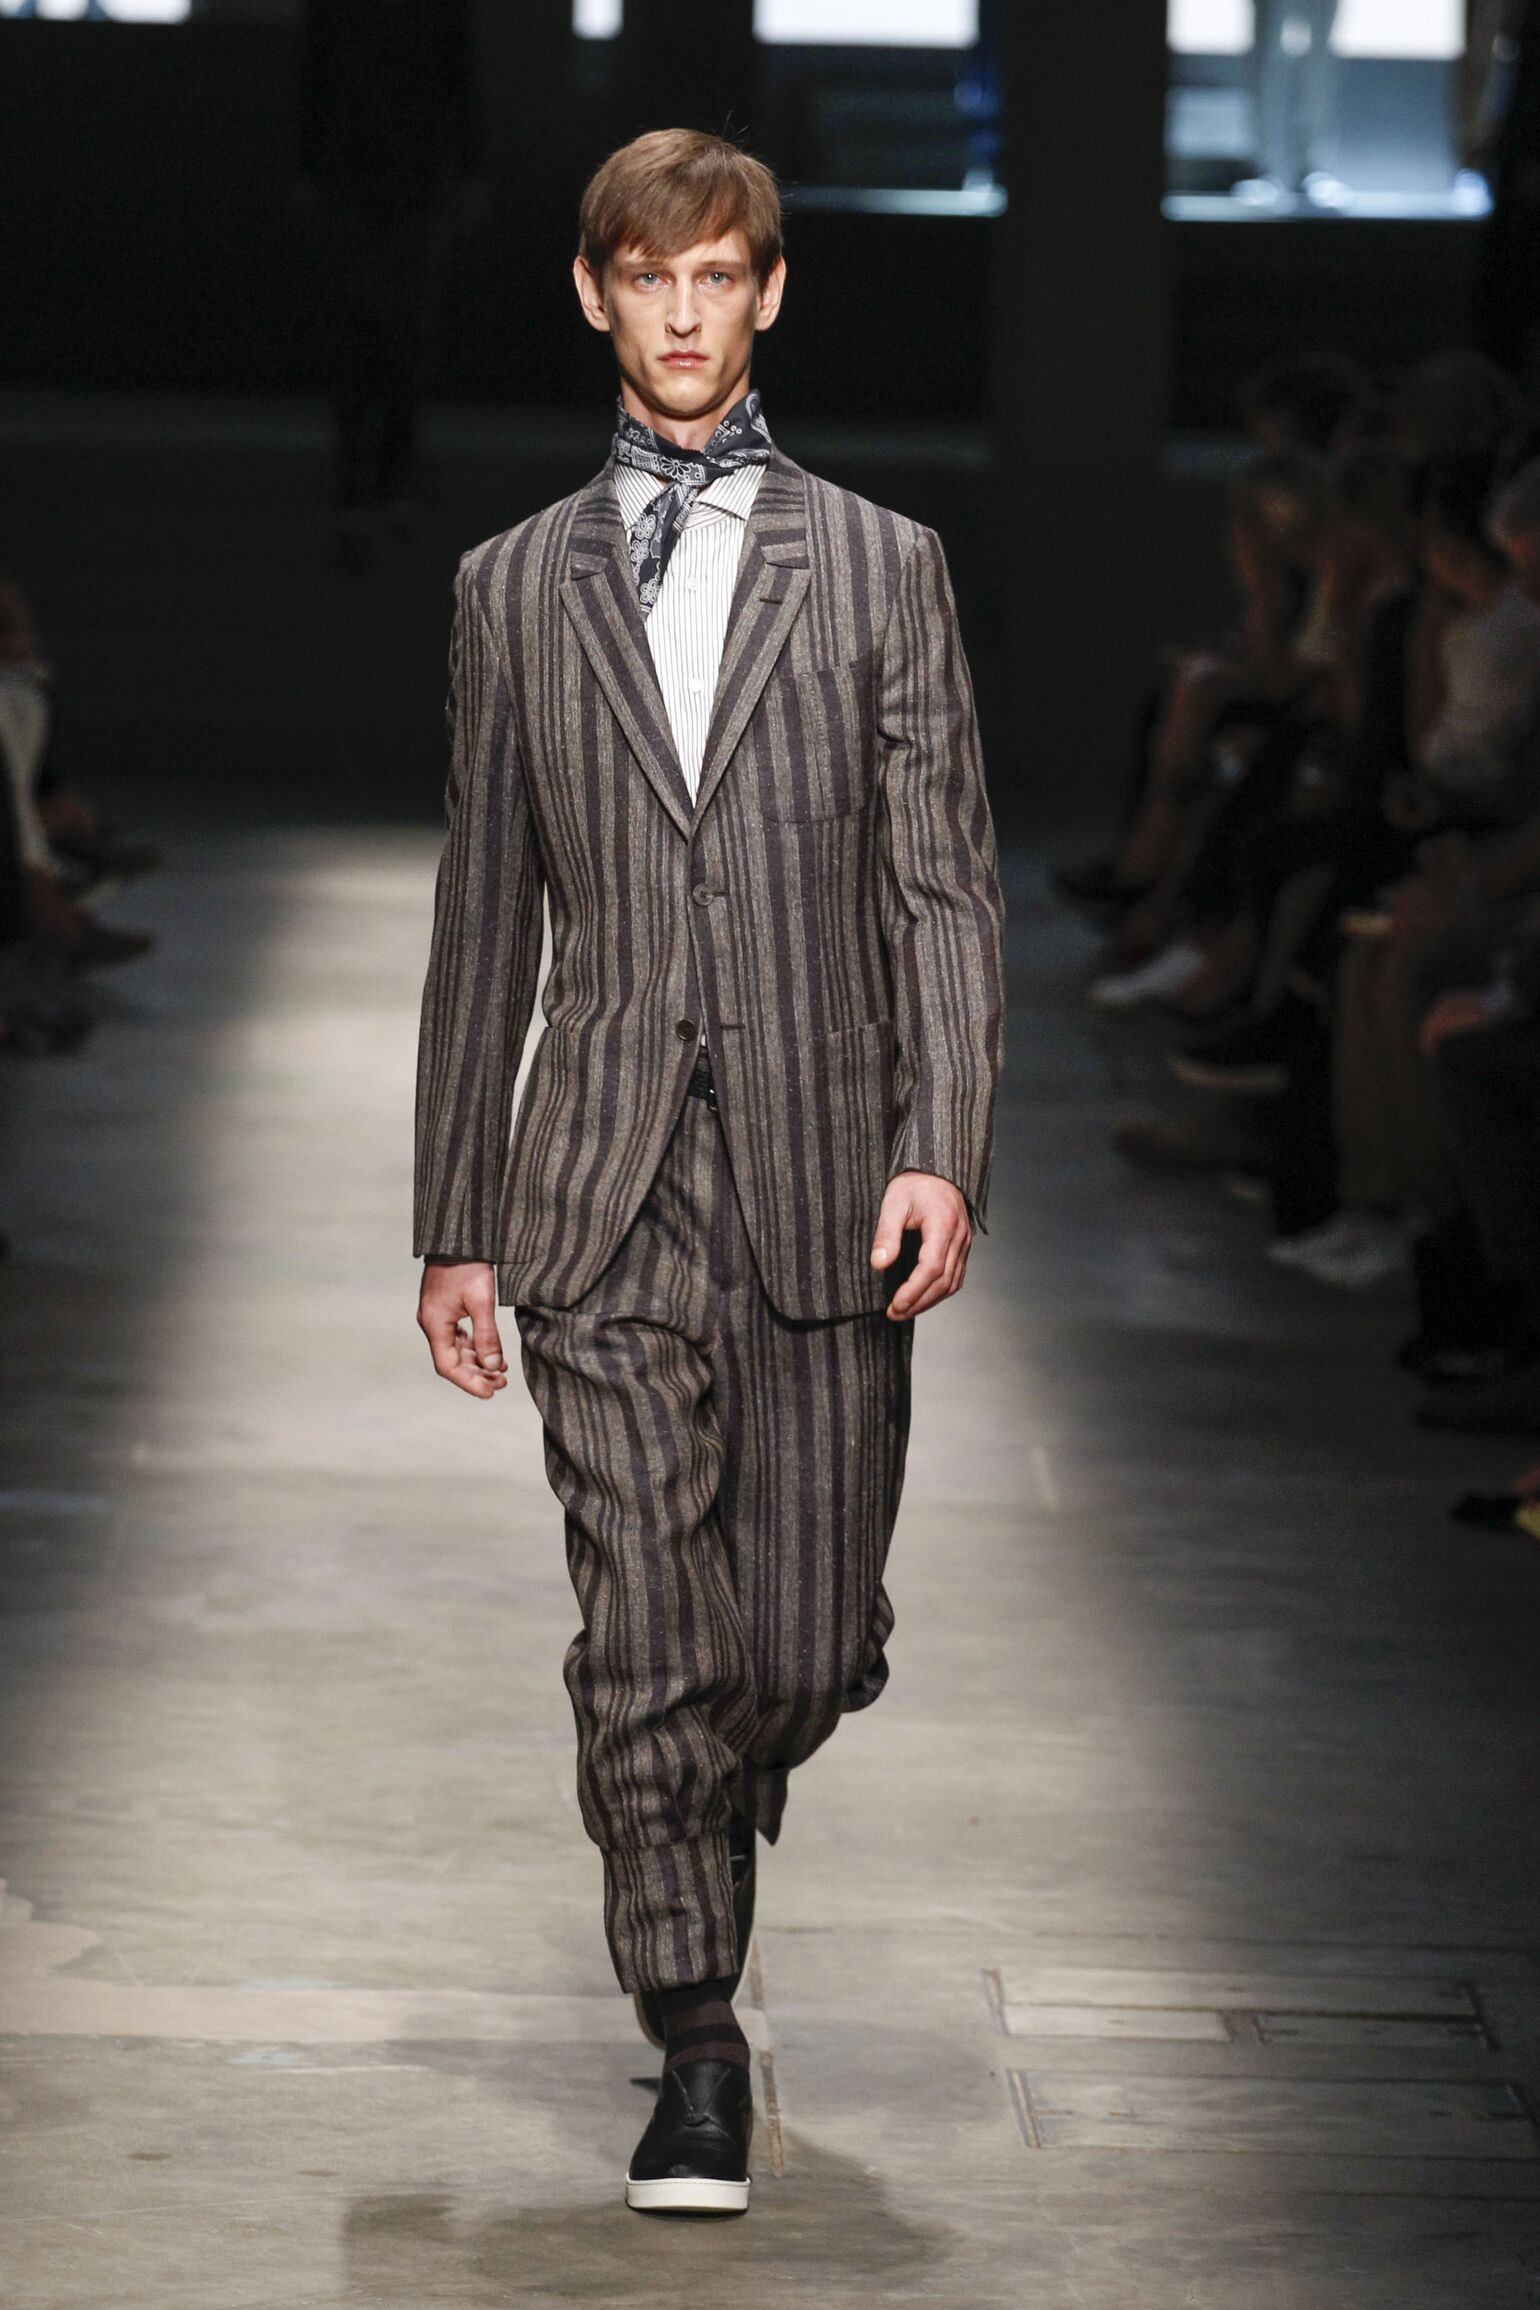 Runway Ermenegildo Zegna Couture Spring Summer 2015 Men's Collection Milan Fashion Week